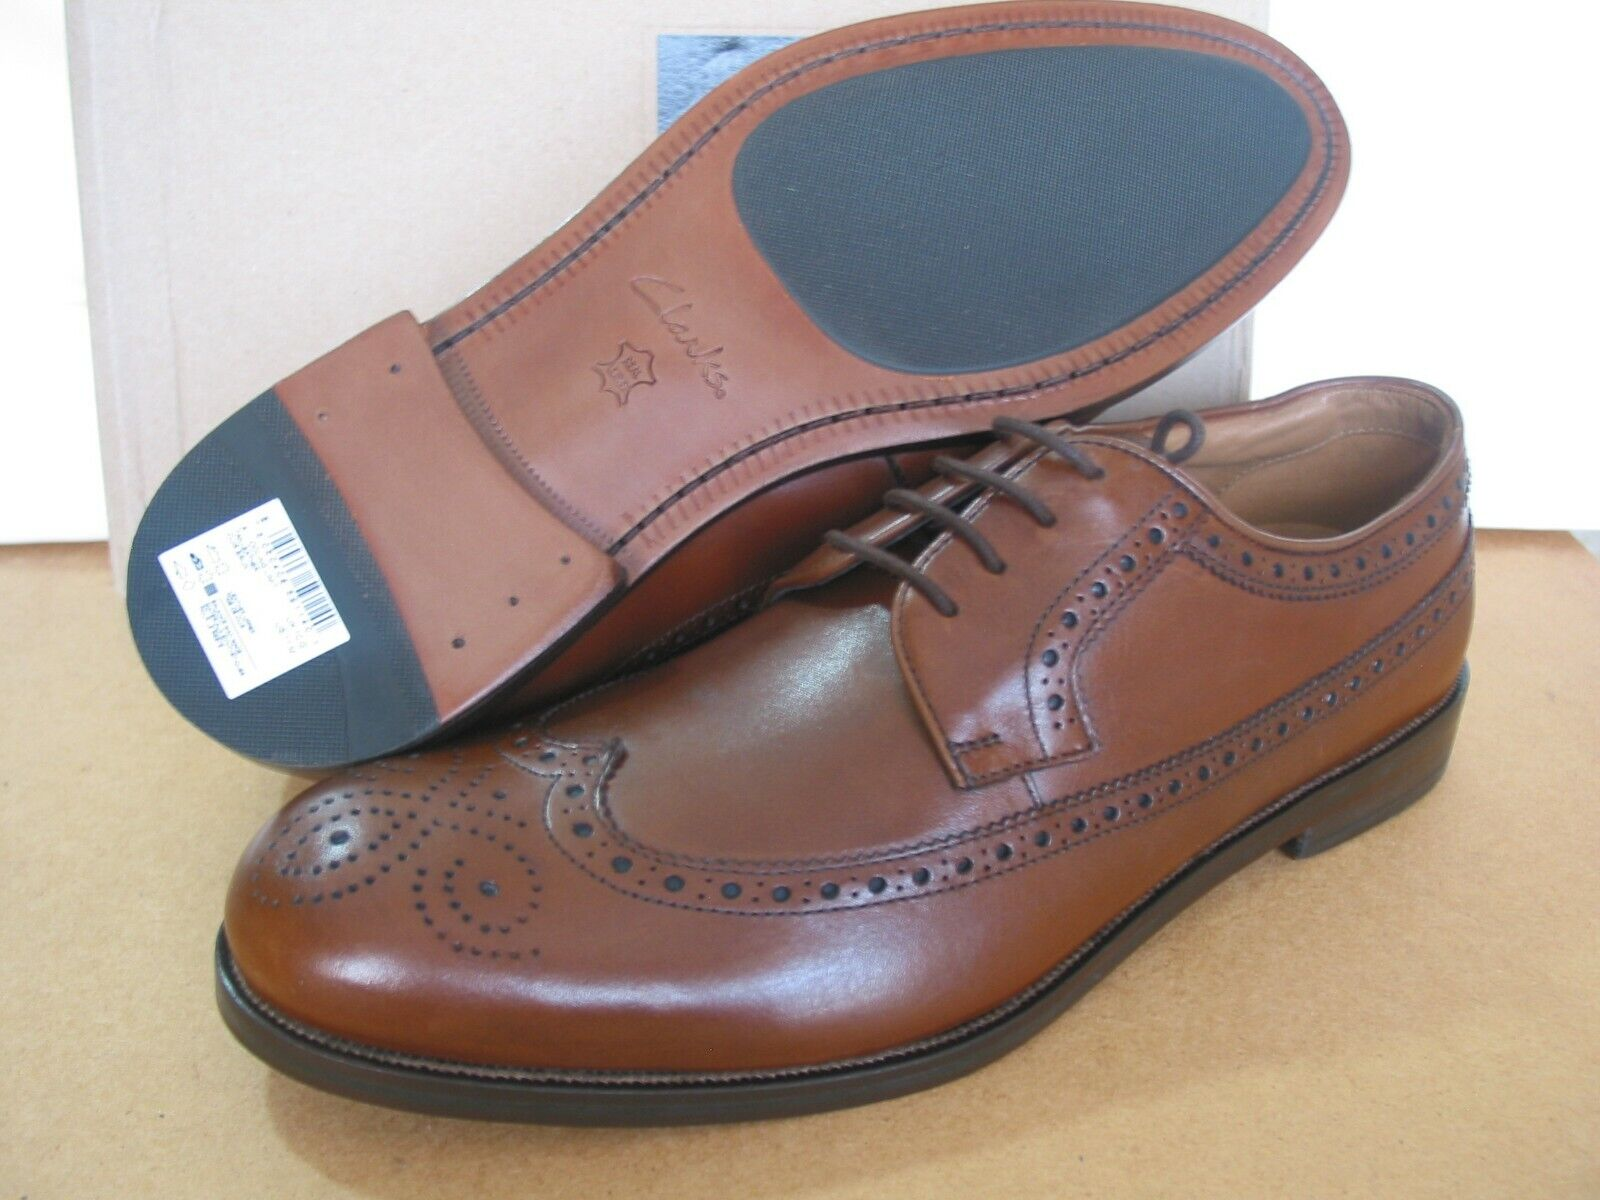 NEW MENS CLARKS COLING LIMIT BROWN LEATHER BROGUES SHOES UK SIZE 8.5